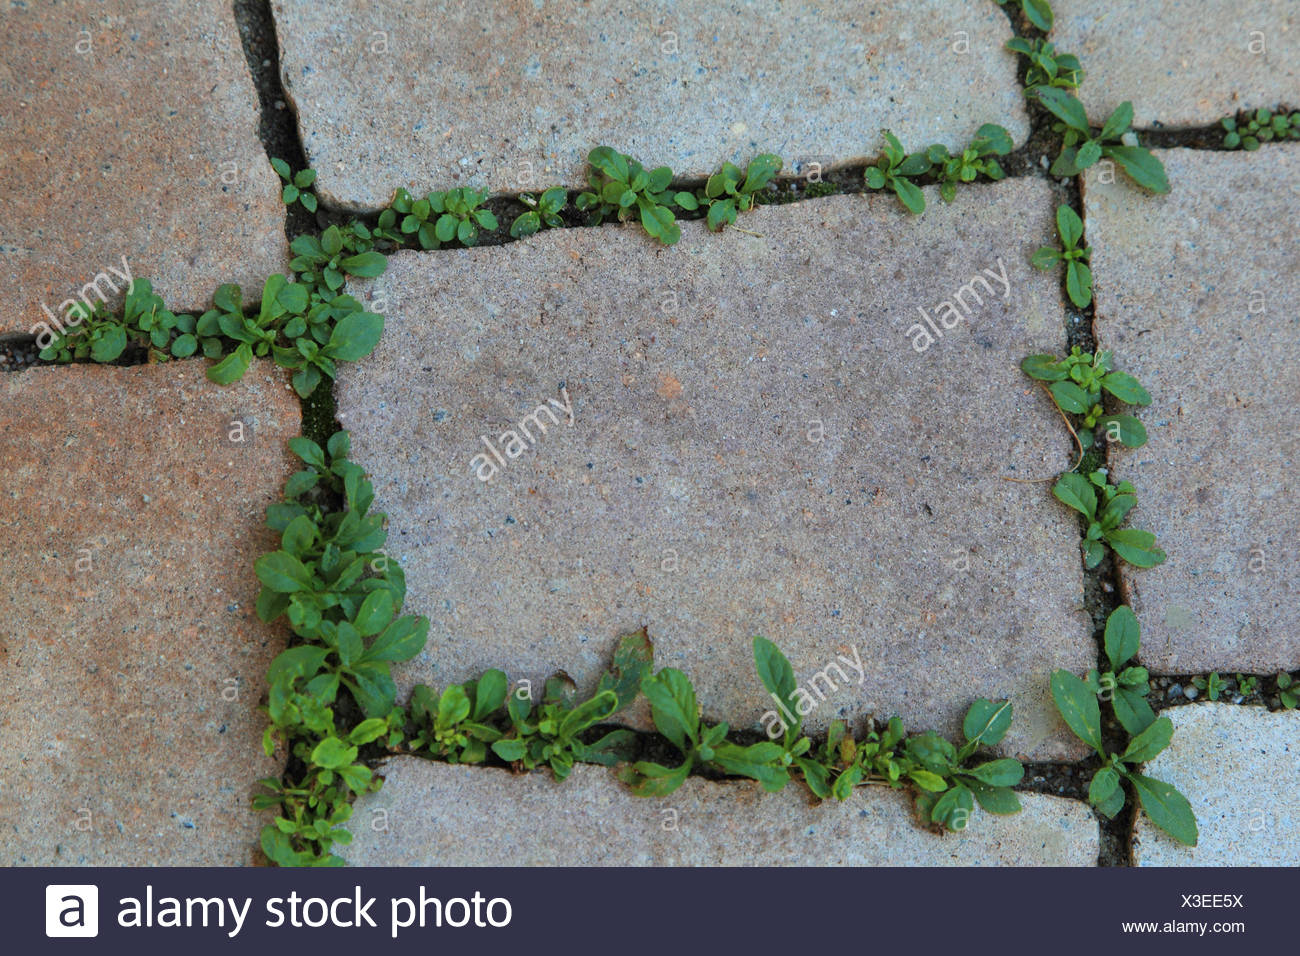 Paving-stones, weed, green, landscape format, garden, stones, plant, to scratches, - Stock Image